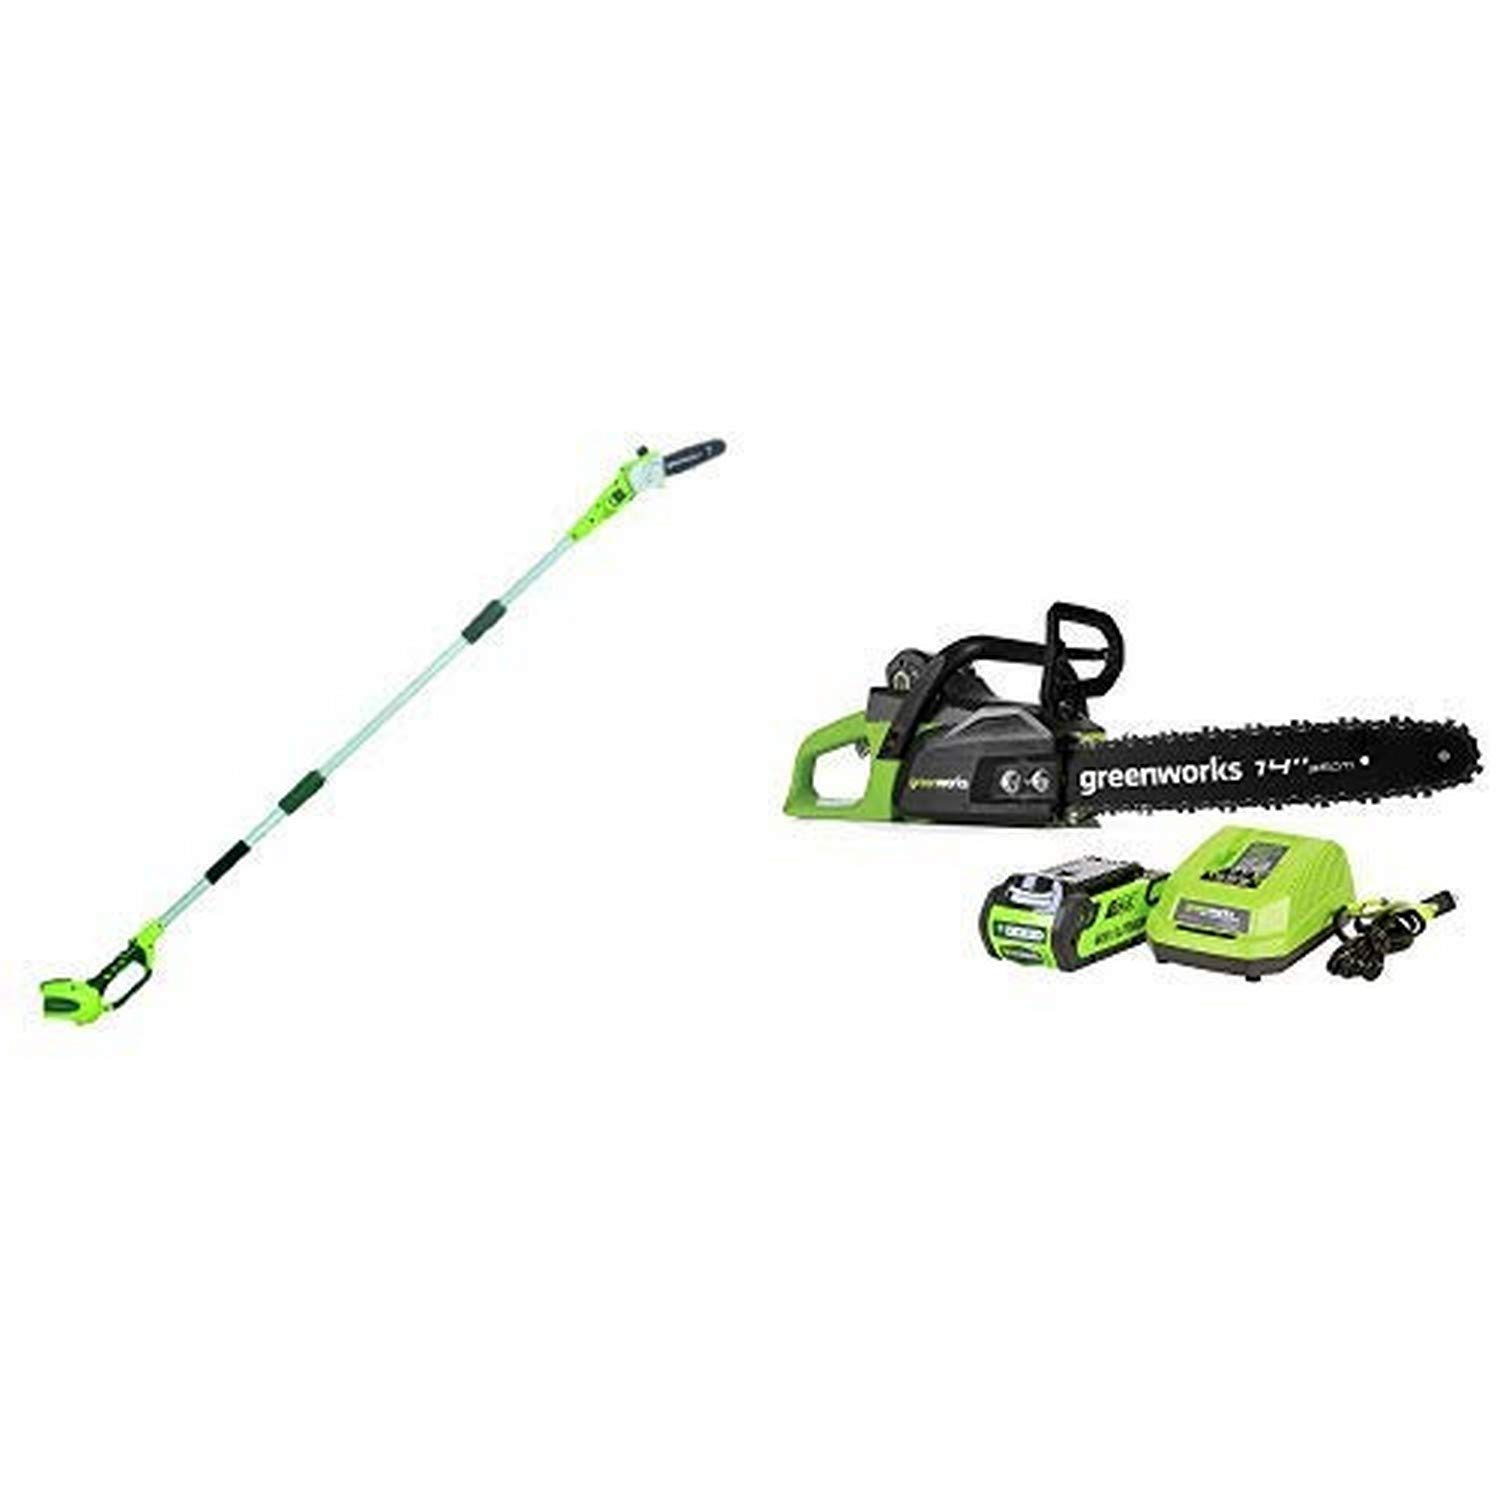 Greenworks 8 40V Cordless Pole Saw 2.0 AH Battery Included CS40L210 Battery Not Included 20302 with  14-Inch 40V Cordless Chainsaw